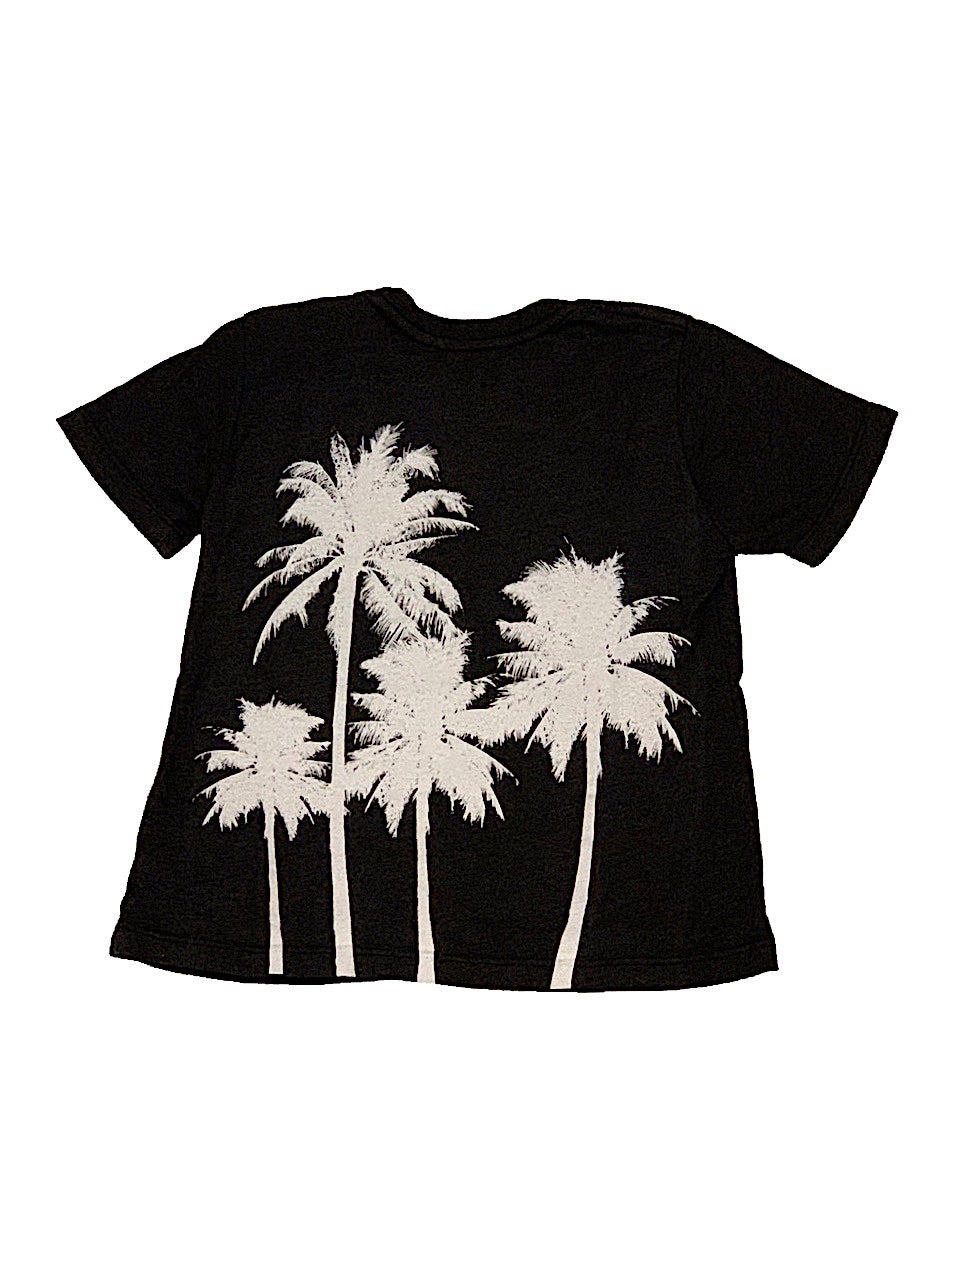 Californian Vintage Charcoal Tee with White Palm Trees